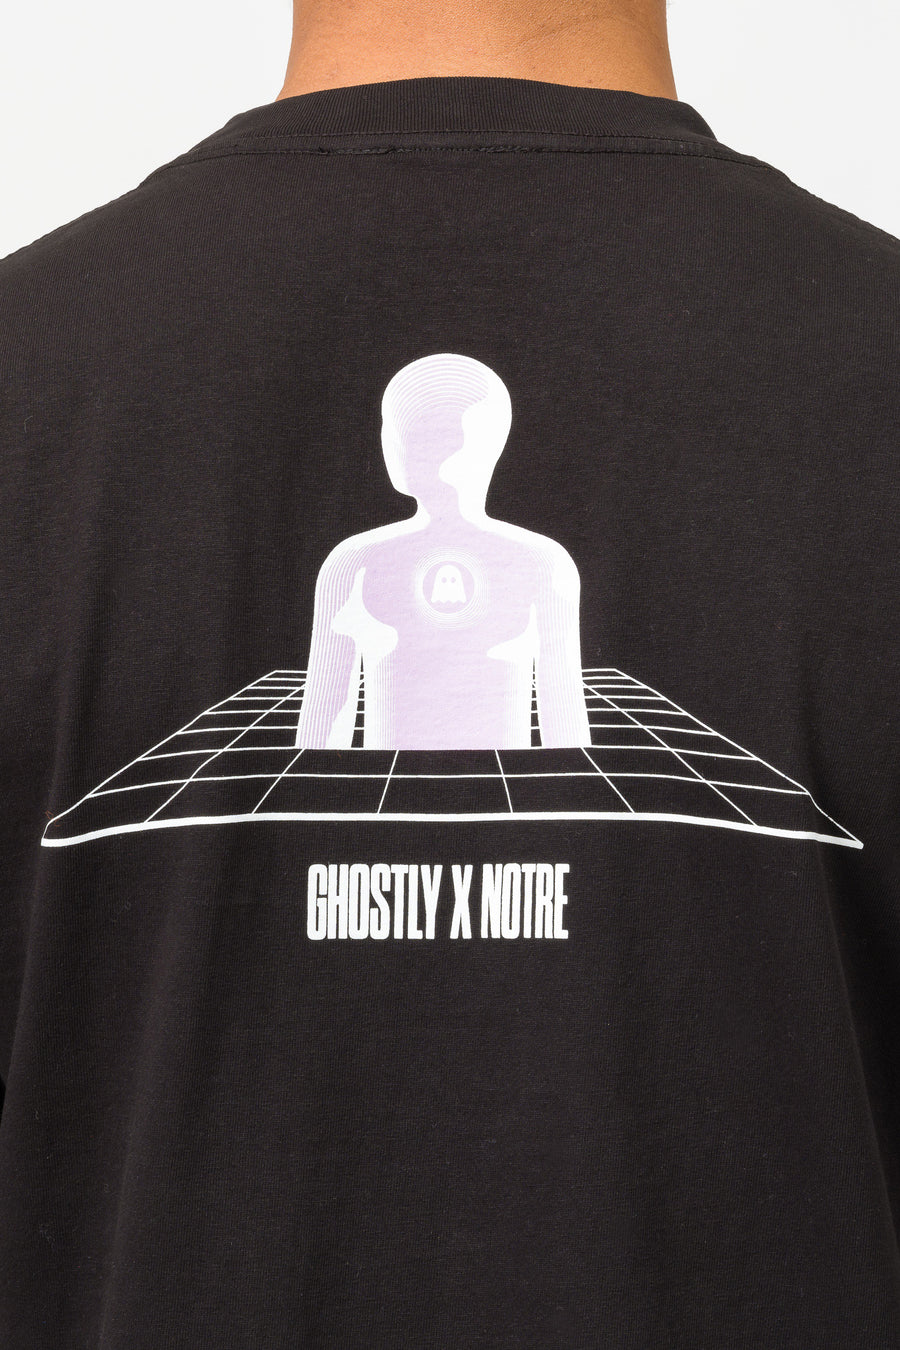 Ghostly Notre x Ghostly Grid Short Sleeve T-Shirt in Black - Notre